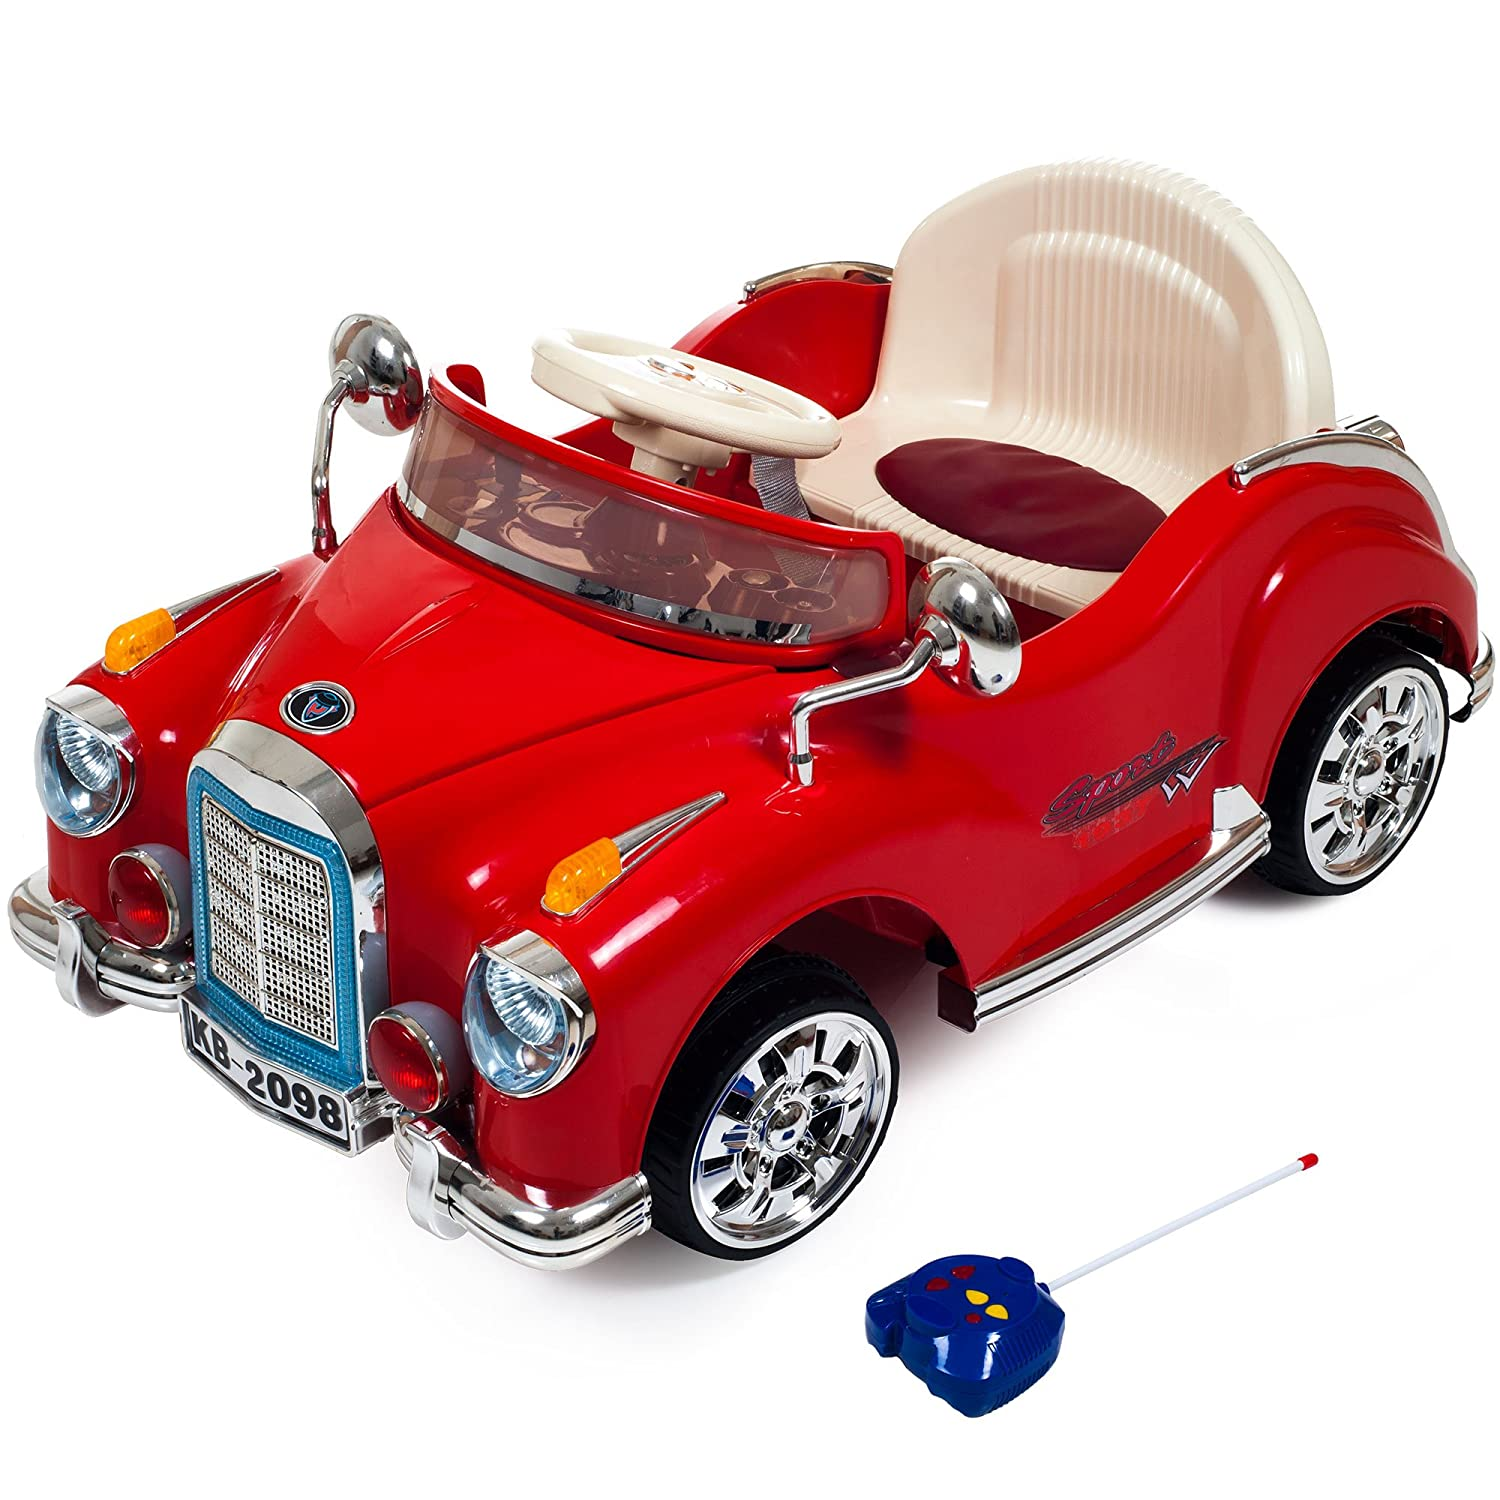 amazoncom ride on toy car battery powered classic car coupe with remote control and sound by lil rider toys for boys and girls 3 year olds and up